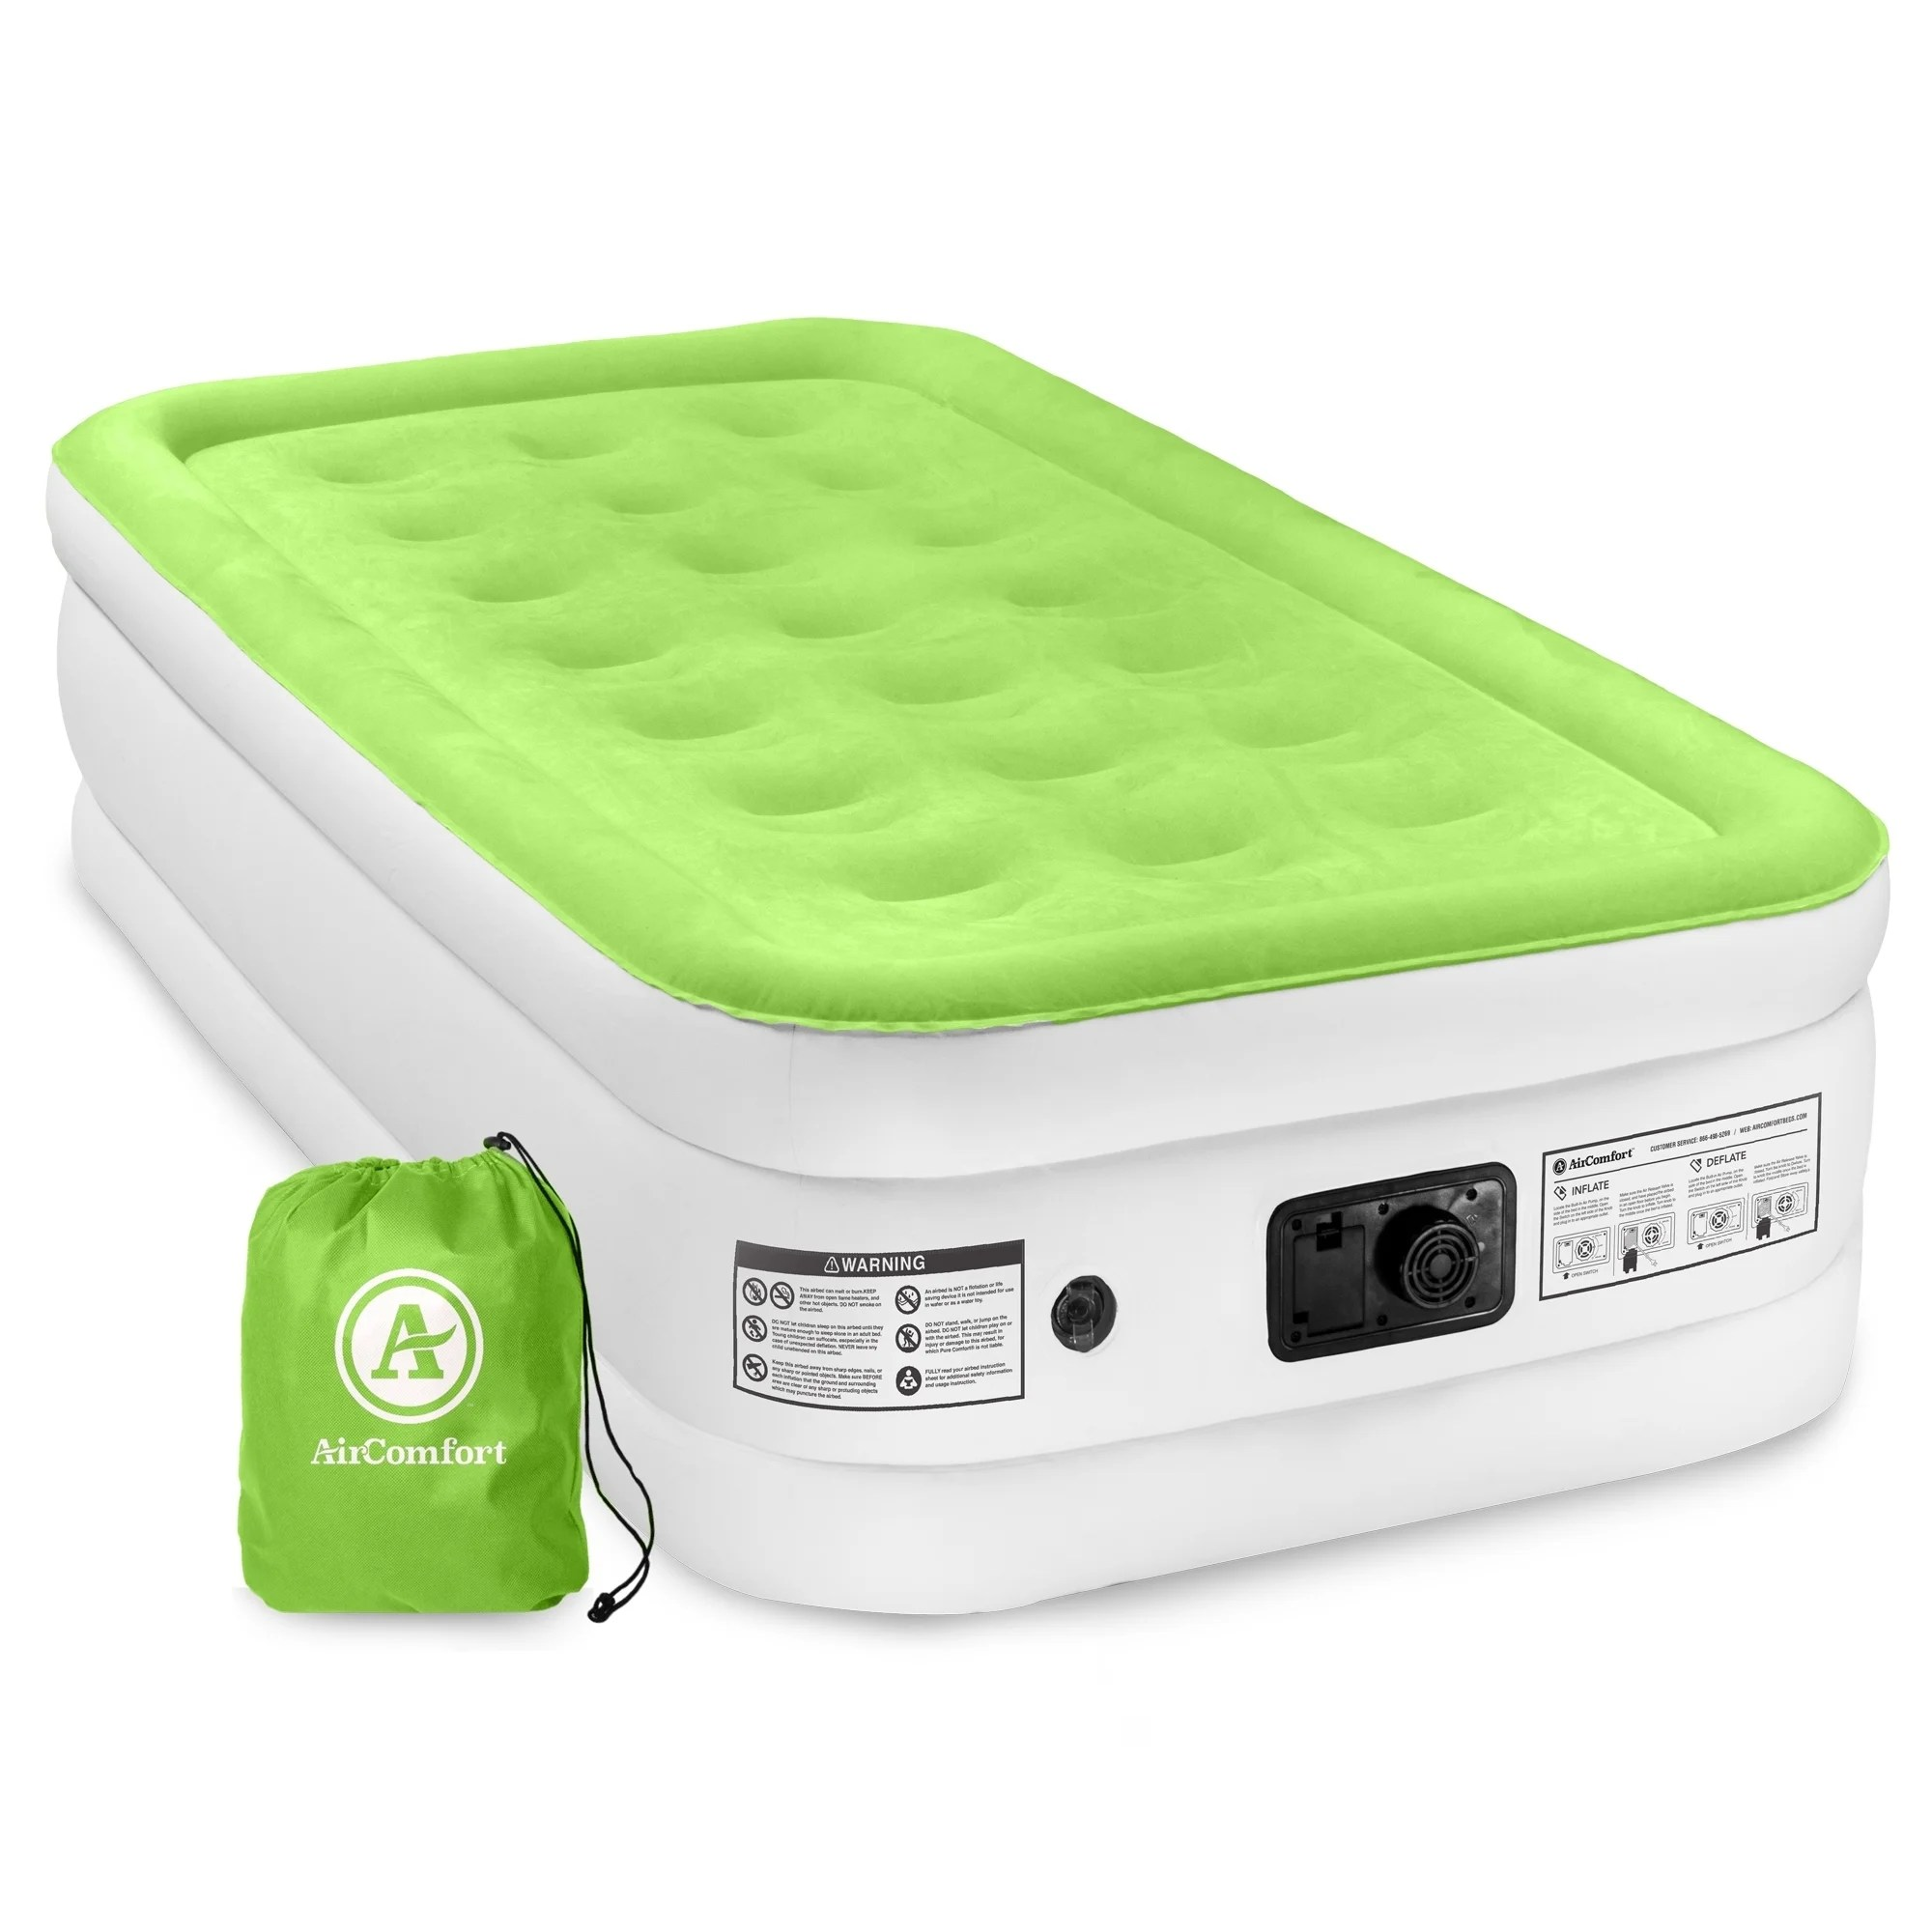 Queen Air Mattress Cot Buy Cots Airbeds Sleeping Pads Online At Overstock Our Best